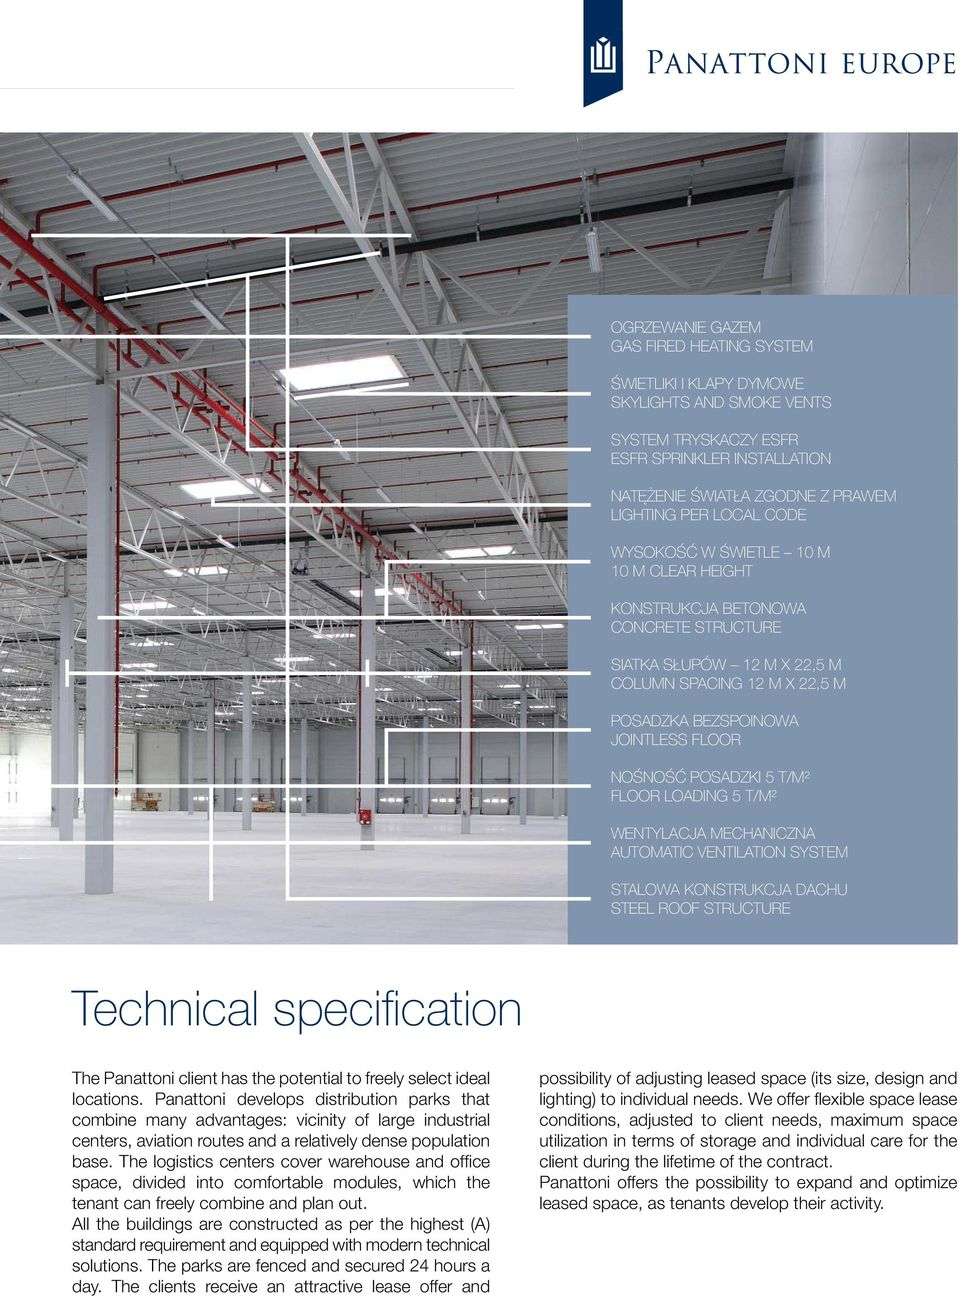 T/M² FLOOR LOADING 5 T/M² WENTYLACJA MECHANICZNA AUTOMATIC VENTILATION SYSTEM STALOWA KONSTRUKCJA DACHU STEEL ROOF STRUCTURE Technical specification The Panattoni client has the potential to freely